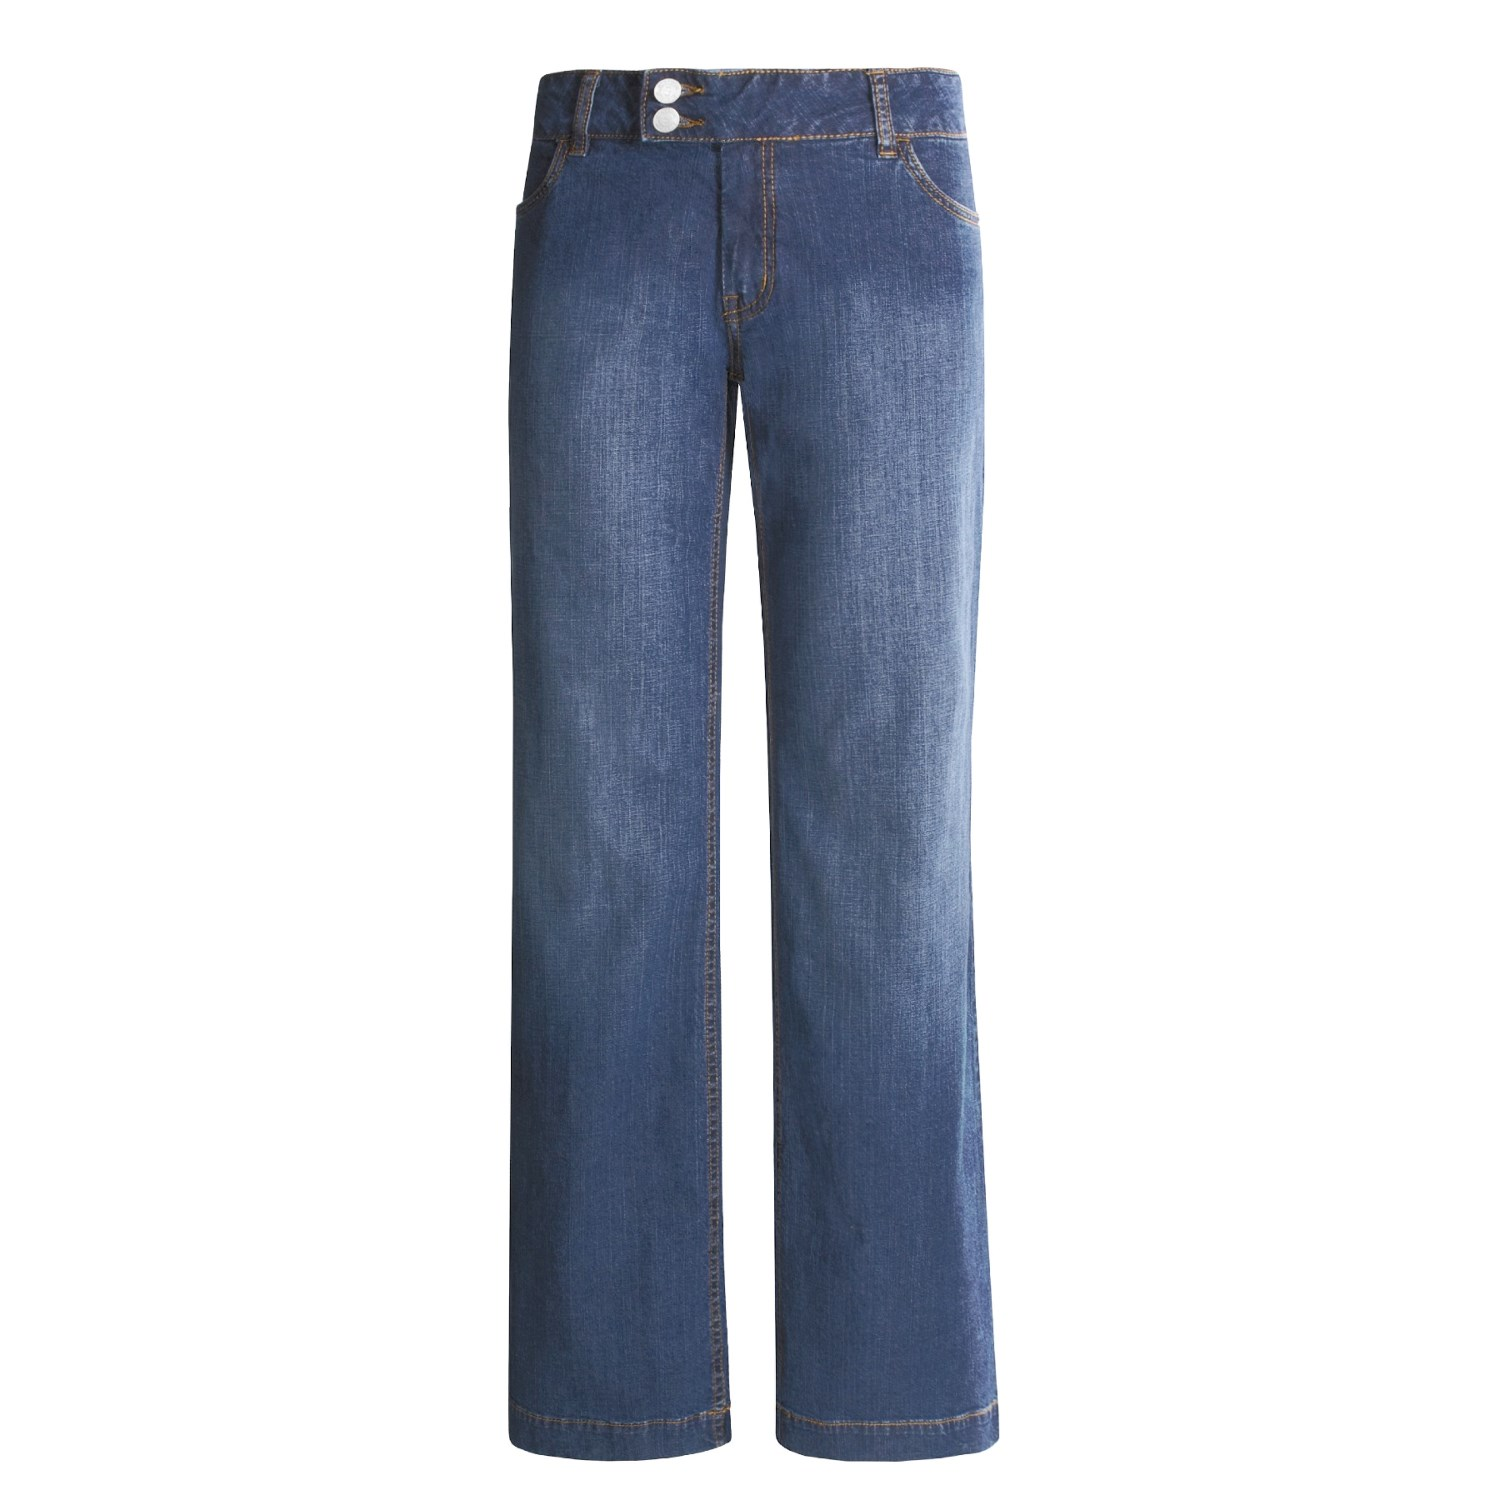 Stetson Trouser Style Jeans (For Women) 86701